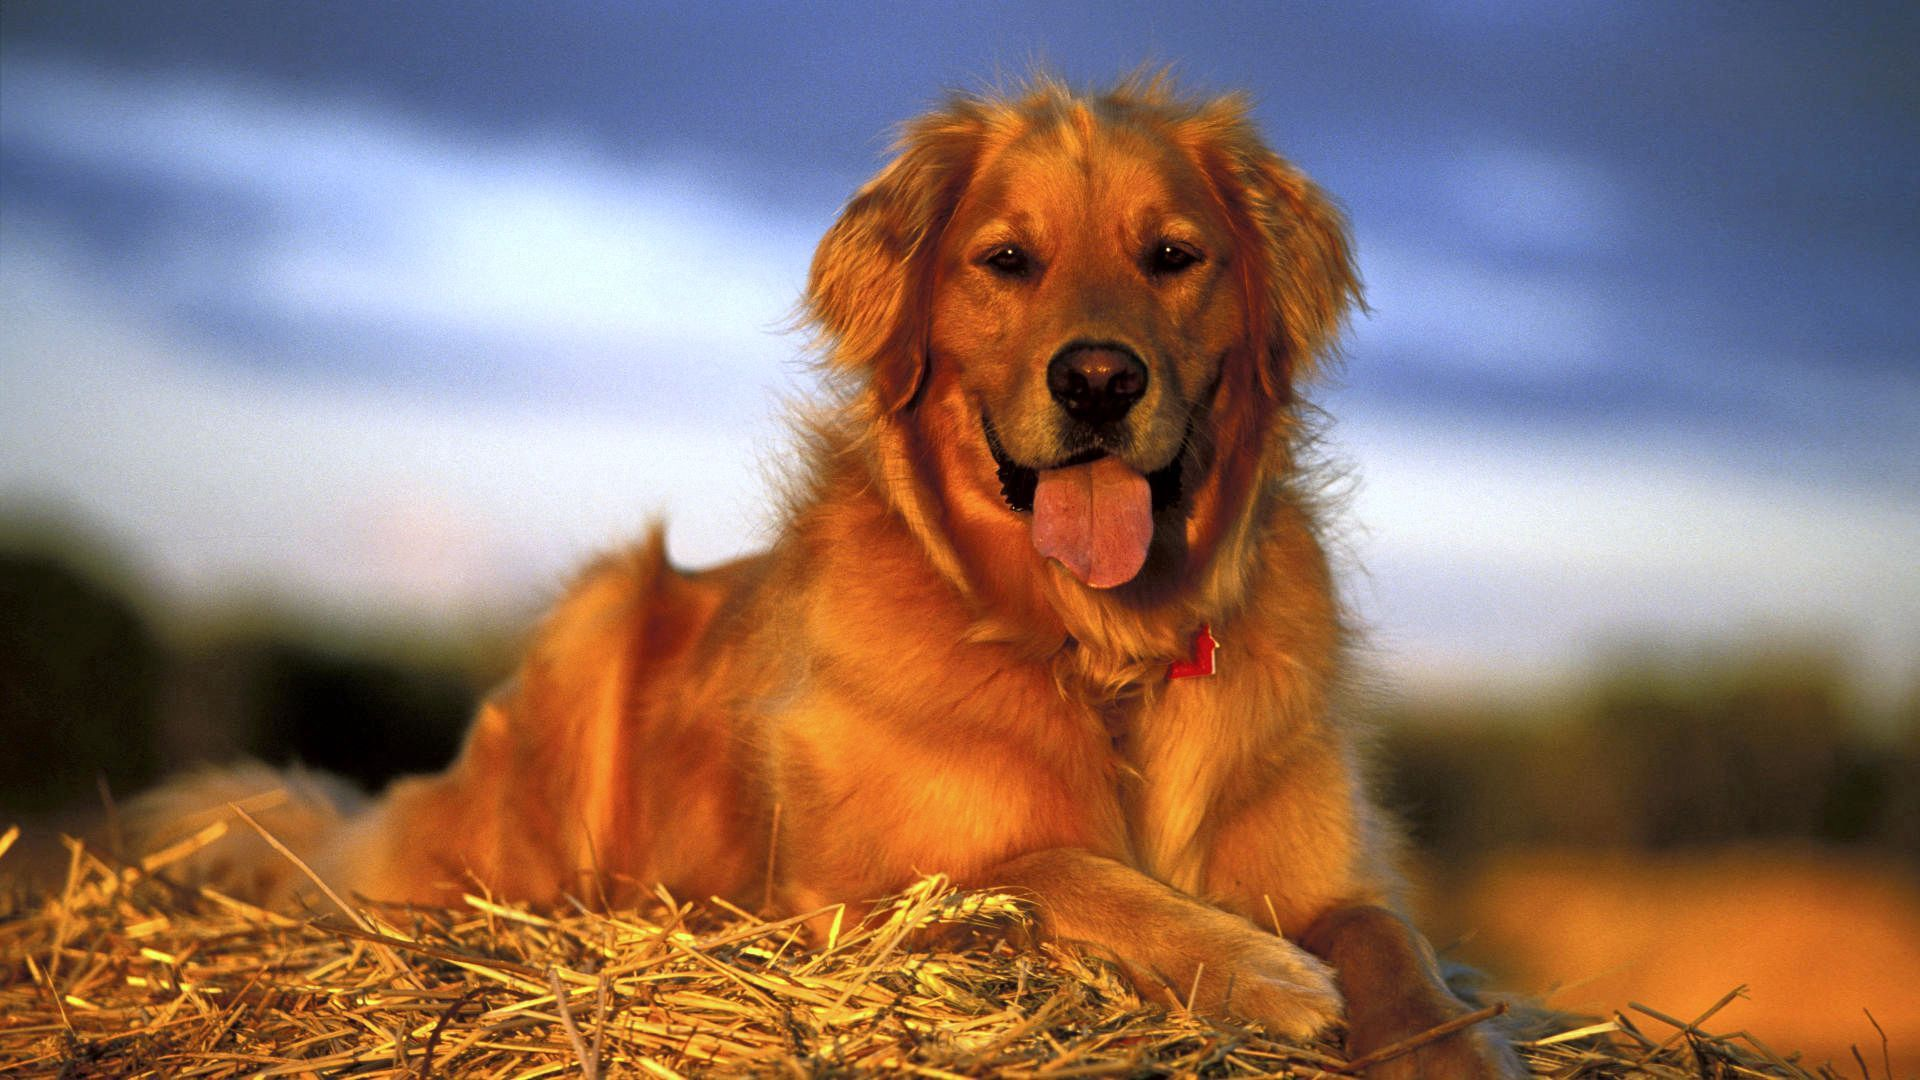 54240 download wallpaper Animals, Dog, Labrador, To Lie Down, Lie, Hay, Relaxation, Rest screensavers and pictures for free